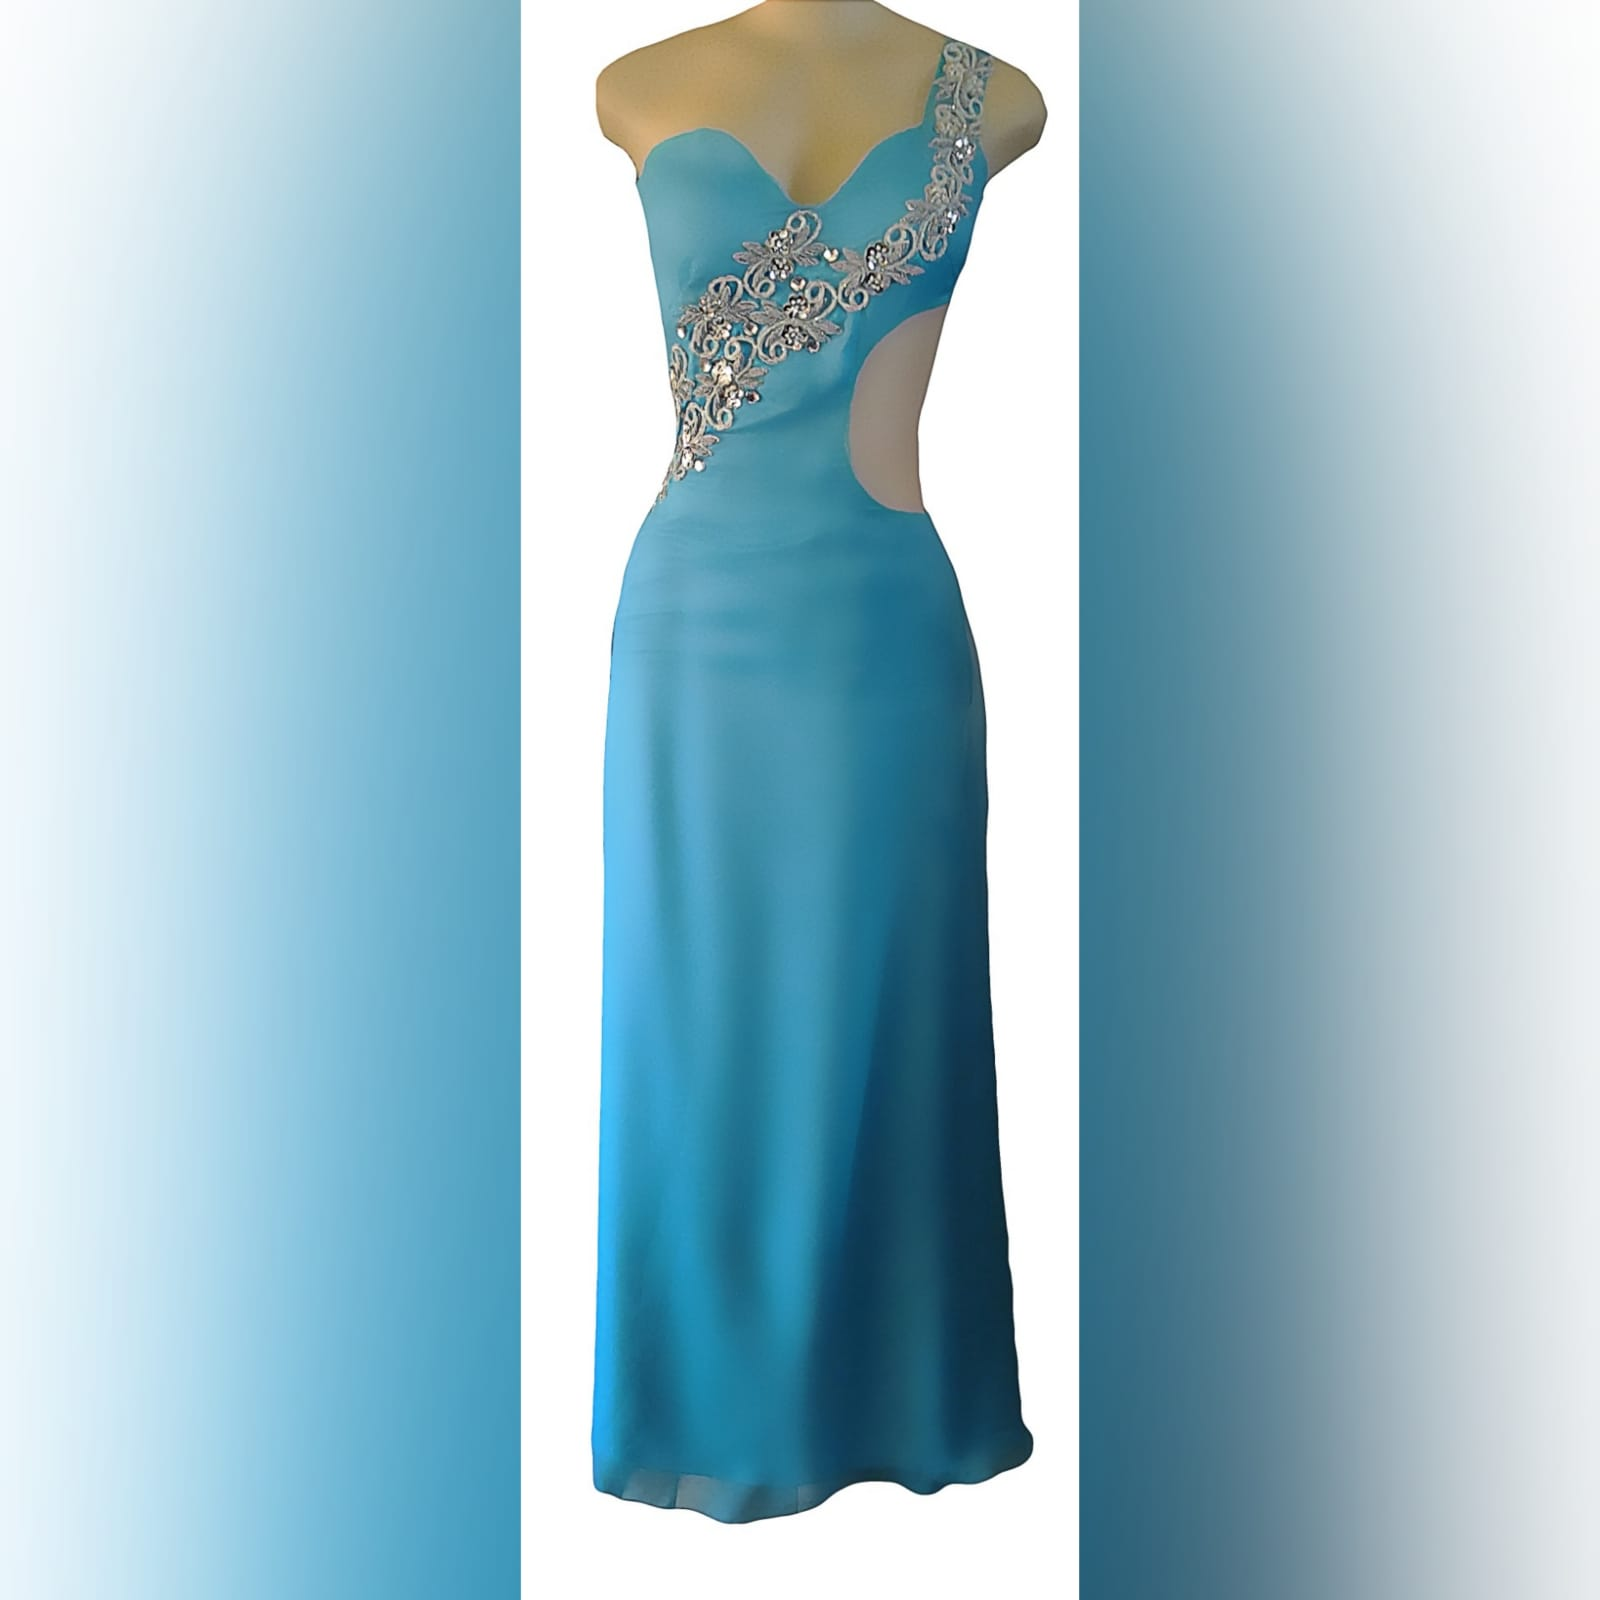 Sky blue chiffon long matric farewell dress 7 sky blue chiffon long matric farewell dress with side tummy opening and low open back. Detailed with silver embellishments. With gathered back chiffon train.